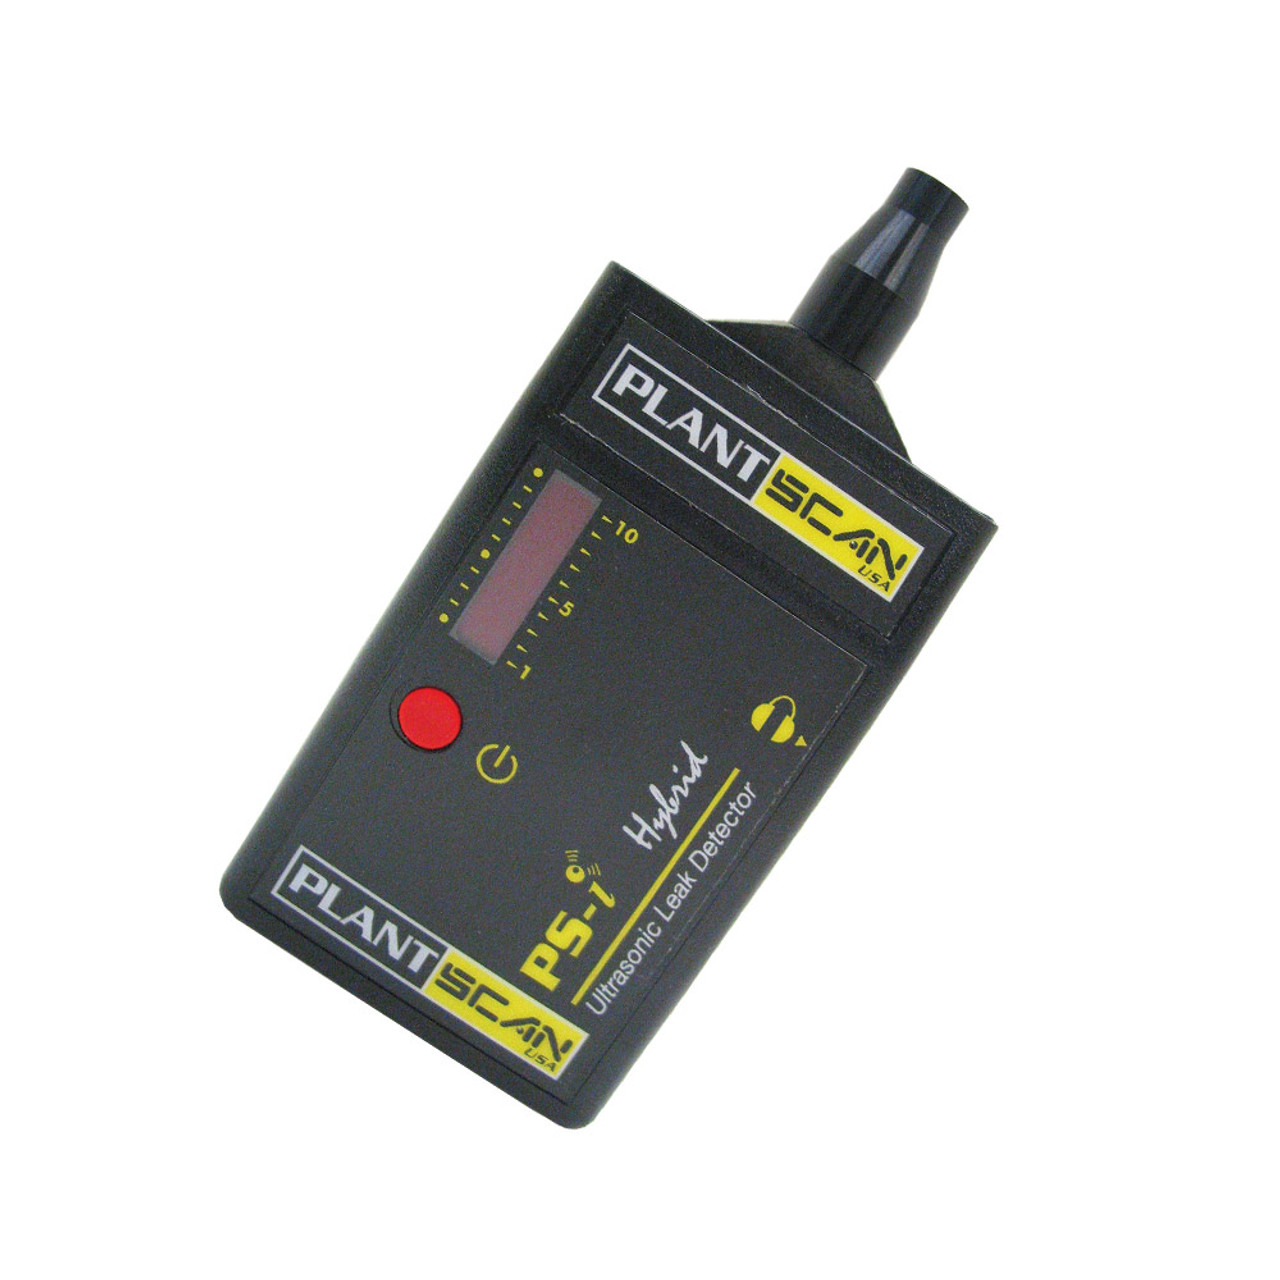 Ps-i Kit - Ultrasonic Leak Detector